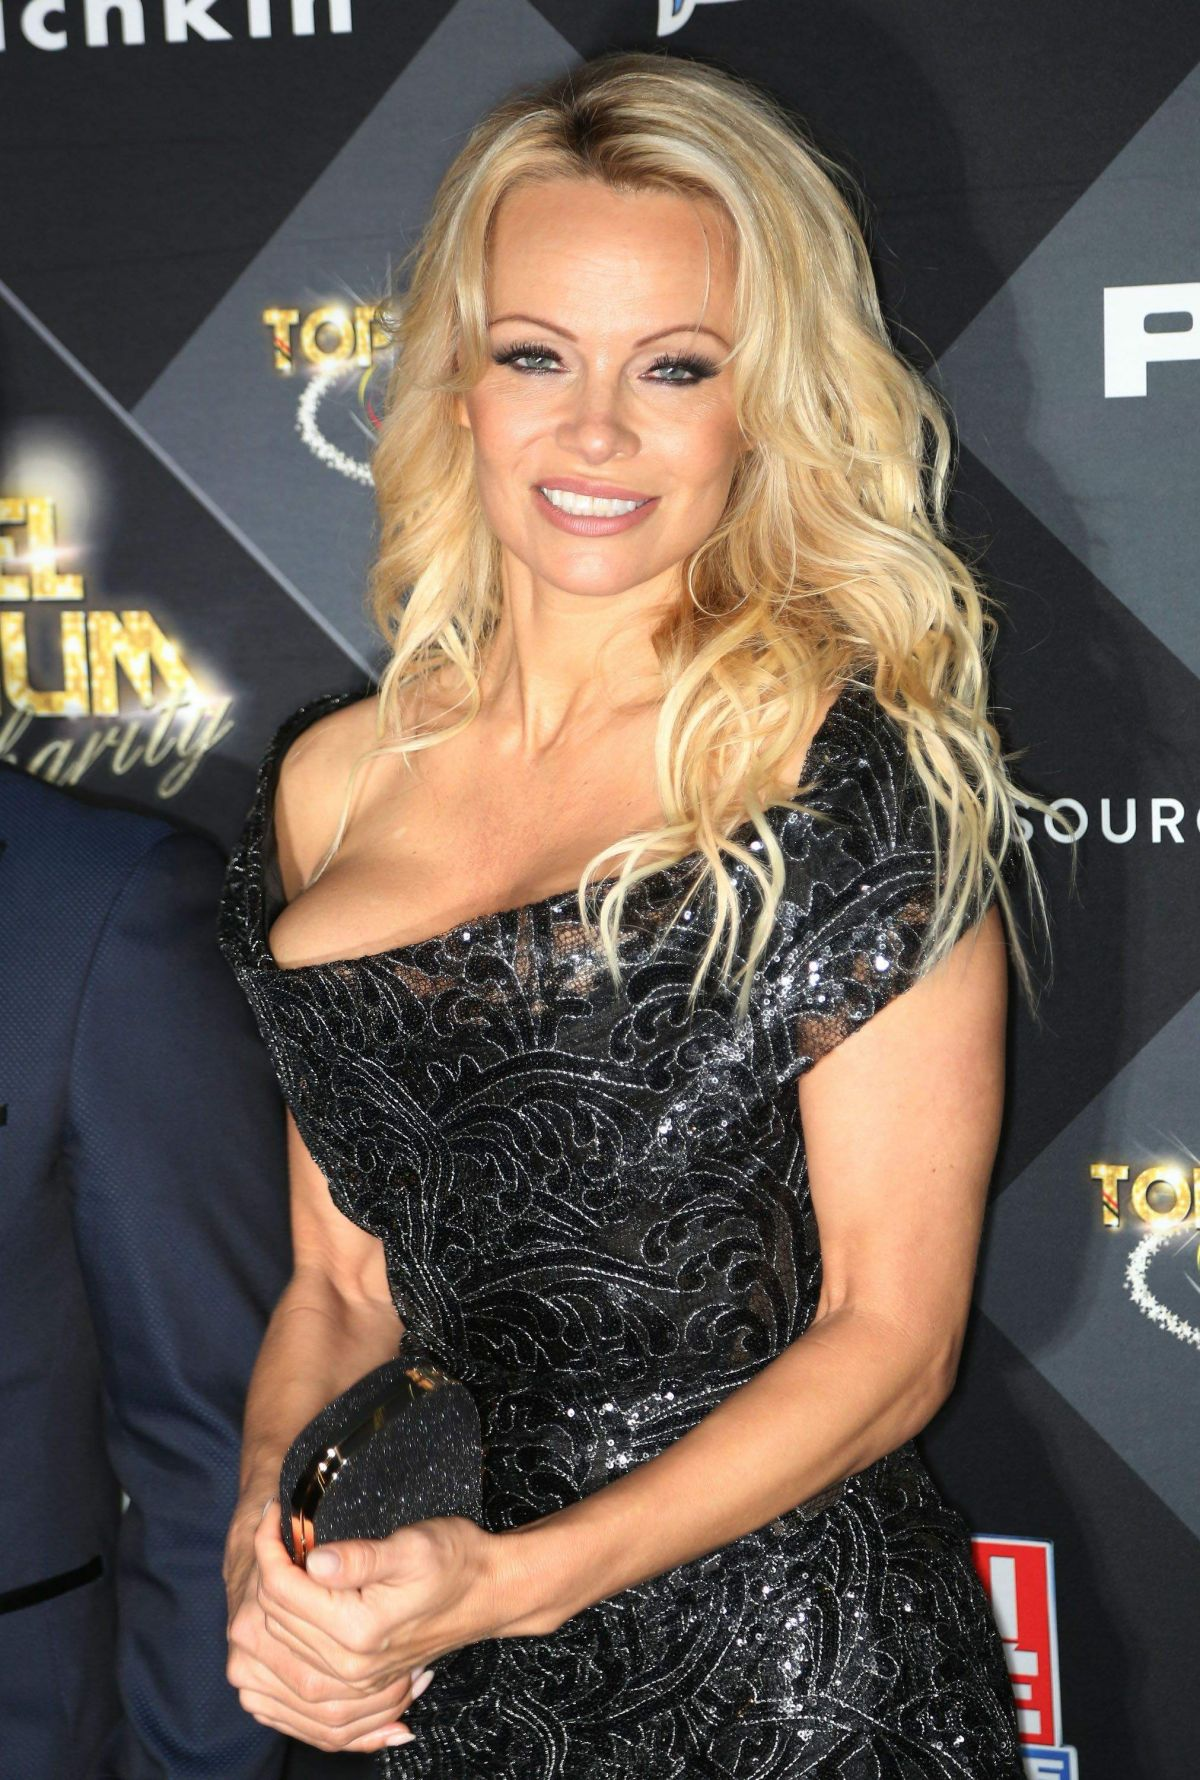 Pamela Anderson As a Guest Judge for the 13th edition of ... Pamela Anderson